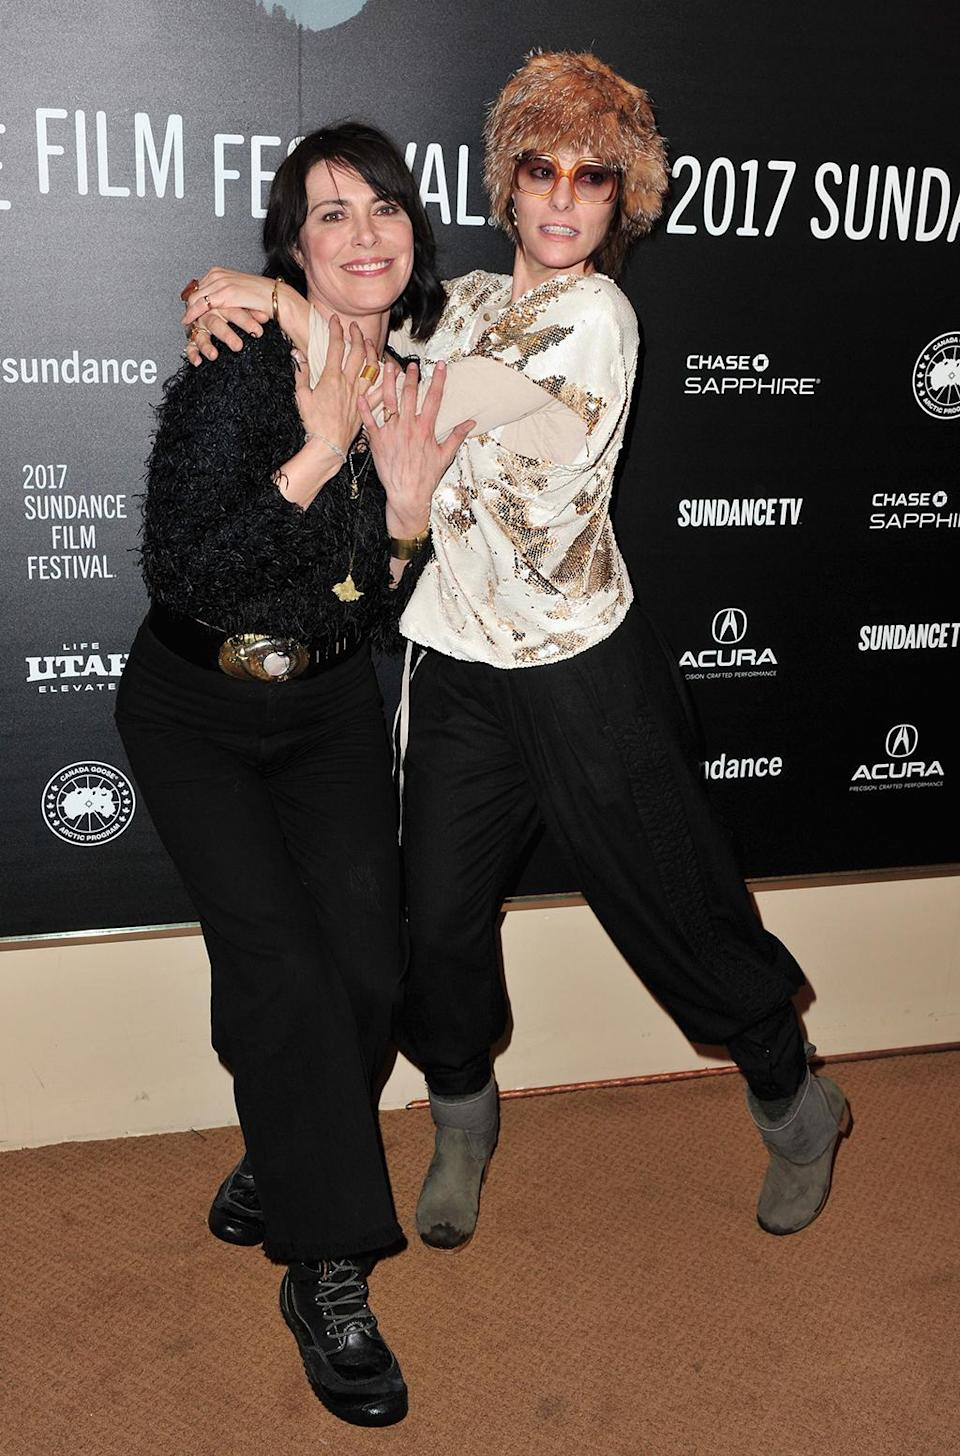 <p>Sundance regular Posey poses with her fellow actress on the carpet for 'Columbus' on Jan. 22. (Photo: Jerod Harris/Getty Images) </p>  <p>John Cho and Haley Lu Richardson</p><p> The actors embrace before 'Columbus' screening. (Photo: Jerod Harris/Getty Images) </p>  <p>Leslie Mann, Judd Apatow, and Iris Apatow</p><p> The Jan. 20 premiere of 'The Big Sick' premiere is family affair. (Photo: George Pimentel/Getty Images) </p>  <p>Chante Adams, Roxanne Shante, and Nia Long</p><p> Adams and Long pose with the real Roxanne Shante at the 'Roxanne Roxanne' premiere on Jan. 22. (Photo: Alberto E. Rodriguez/Getty Images) </p>  <p>Shailene Woodley</p><p> The actress-activist attends the Standing Rock Event at Zoom Restaurant on Jan. 23. (Photo by Alberto E. Rodriguez/Getty Images) </p>  <p>Chloë Sevigny</p><p> The 'Bloodline' star attends the premiere of 'Beatriz at Dinner' on Jan. 23. (Photo: Nicholas Hunt/Getty Images) </p>  <p>Connie Britton</p><p> The 'Nashville' star also makes the scene for 'Beatriz at Dinner.' (Photo: George Pimentel/Getty Images) </p>  <p>Jay Duplass, Connie Britton, John Lithgow, and Chloë Sevigny</p><p> The cast of 'Beatriz at Dinner' takes a selfie at the premiere. (Photo: George Pimentel/Getty Images) </p>  <p>Salma Hayek</p><p> The star arrives for 'Beatriz at Dinner.' (Photo: George Pimentel/Getty Images) </p>  <p>Tim Robbins, Lois Smith, Geena Davis, and Jon Hamm</p><p> The cast of 'Marjorie Prime' poses at the Jan. 23 premiere. (Photo: George Pimentel/Getty Images) </p>  <p>Mark Hamill</p><p> The 'Star Wars' icon attends the 'Brigsby Bear' premiere on Jan. 23. (Photo: Nicholas Hunt/Getty Images) </p>  <p>Kerry Washington</p><p> The 'Scandal' star poses at the 'Crown Heights' premiere on Jan. 23. (Photo: Sonia Recchia/Getty Images) </p>  <p>Bill Kreutzmann, Bob Weir and Mickey Hart</p><p> Surviving members of the Grateful Dead arrive at their documentary 'Long Strange Trip' on Jan. 23. (Photo: Jerod Harris/Getty Images) </p>  <p>Danny Glover